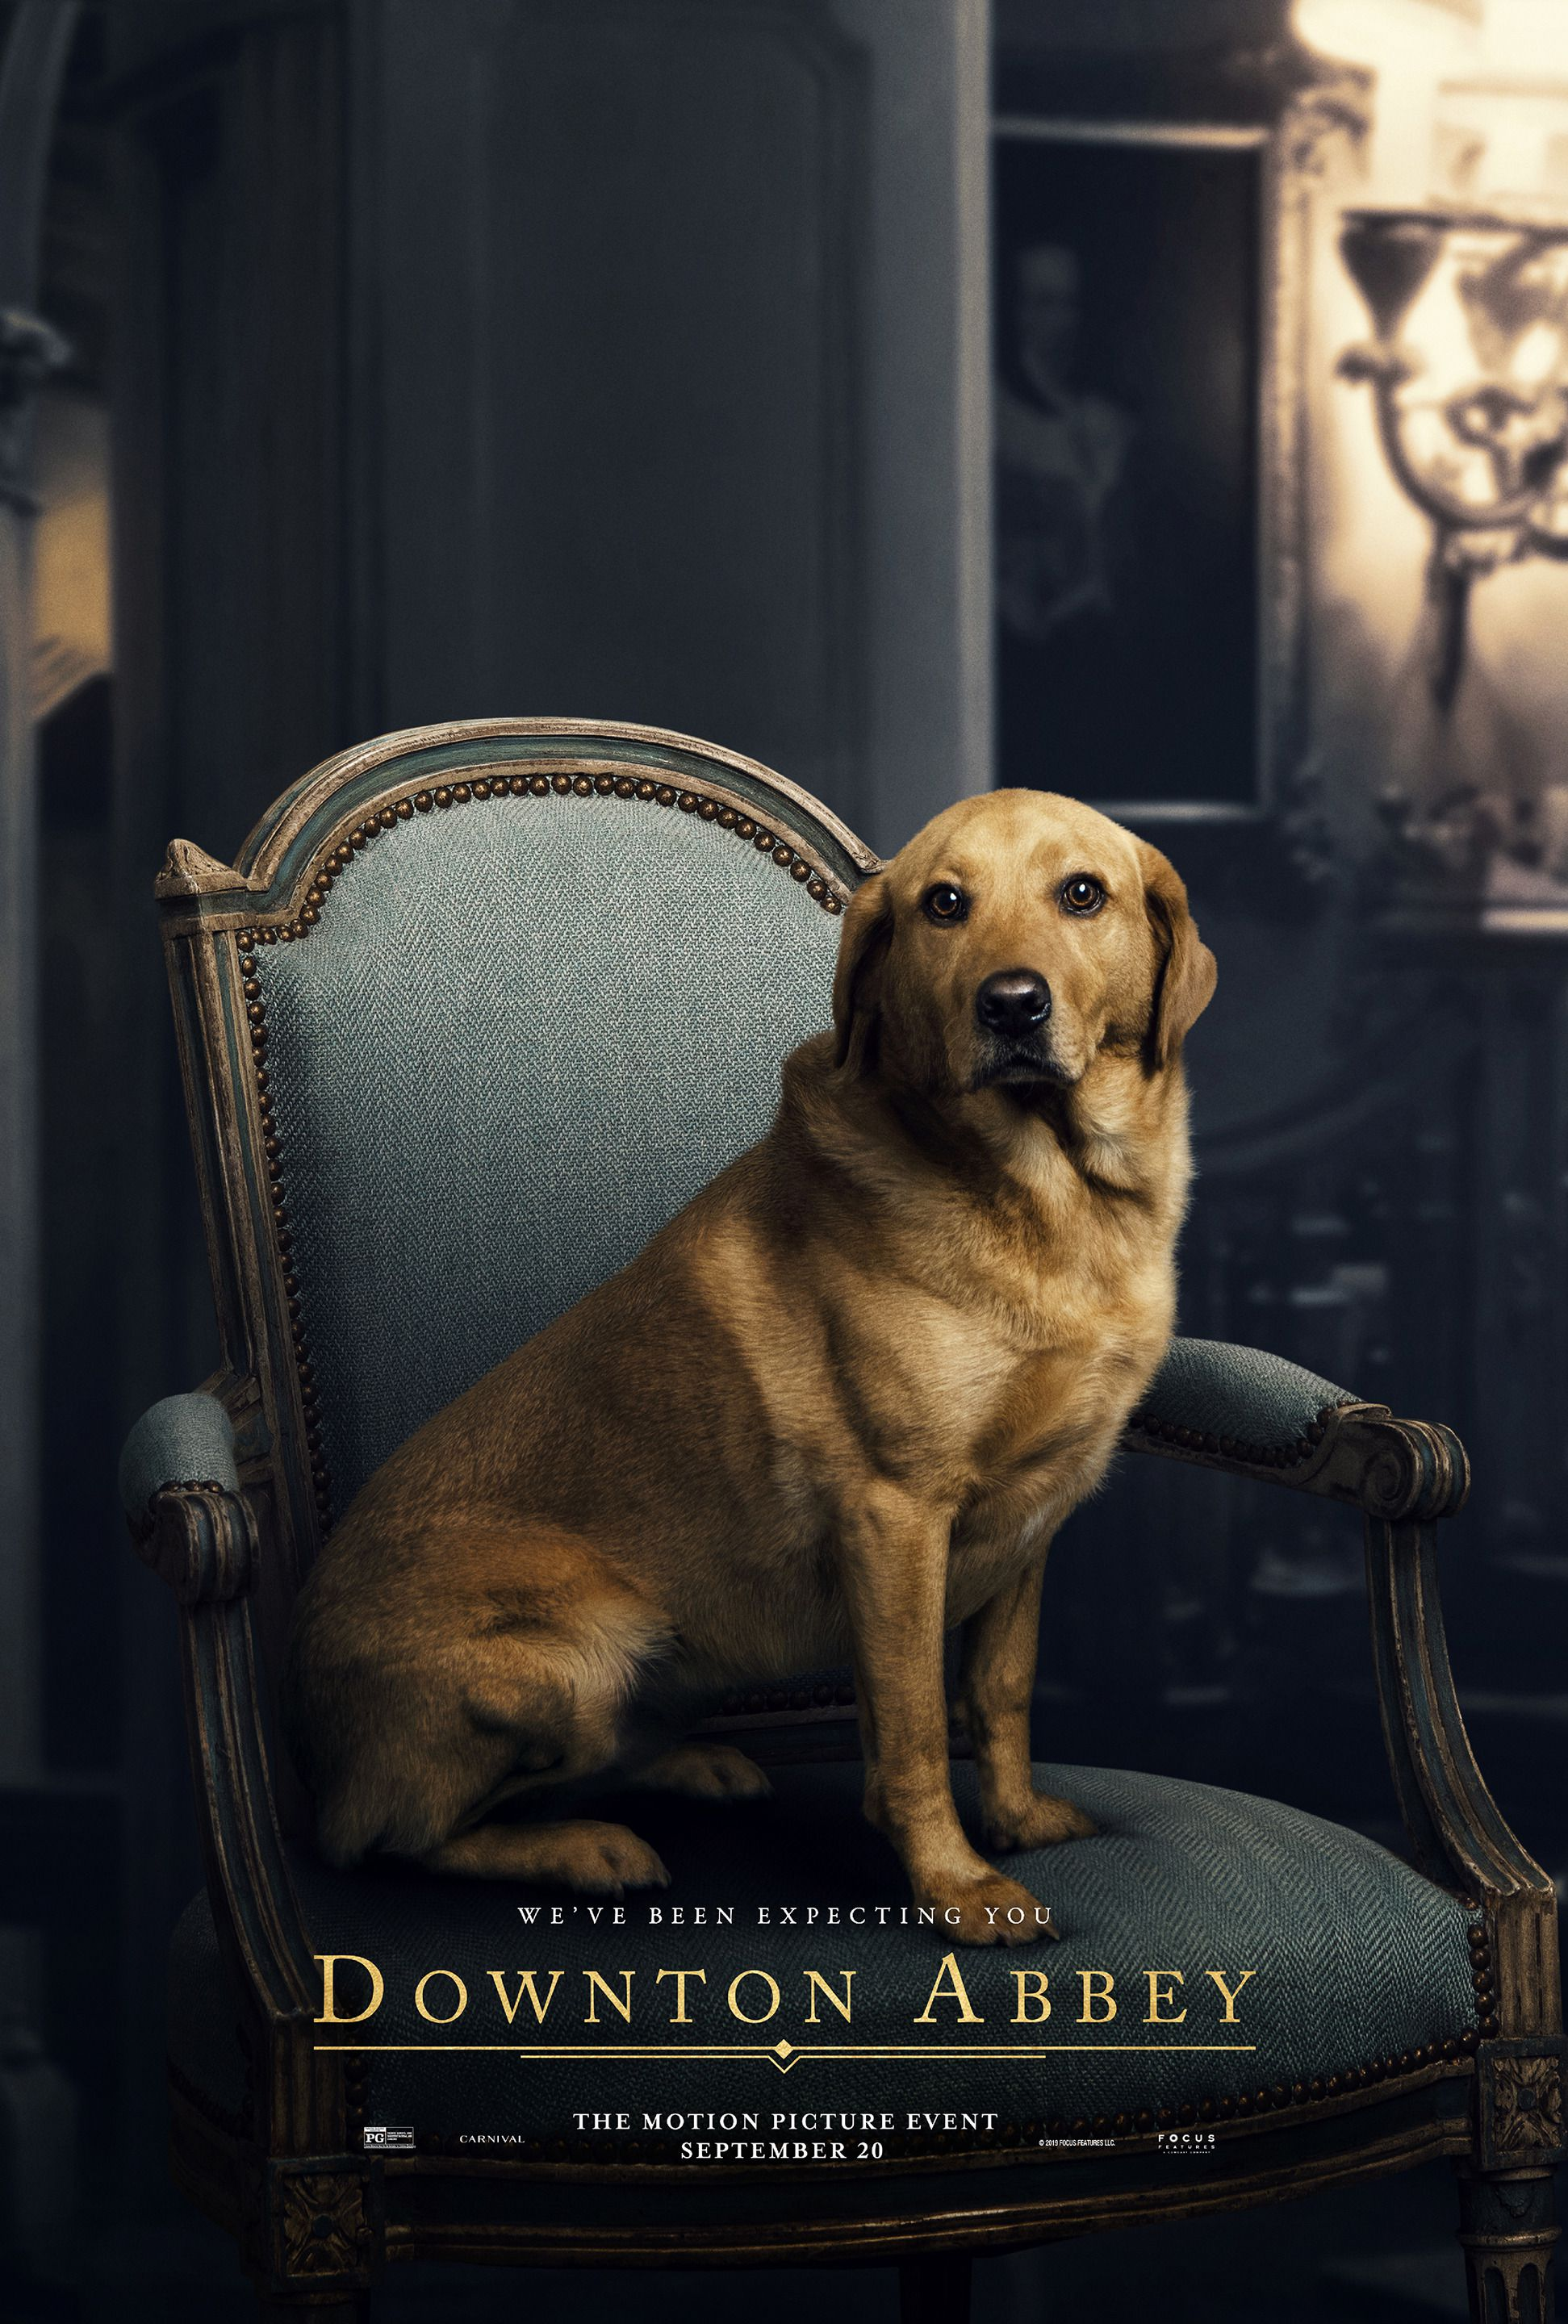 Downton Abbey (2019) the Dog